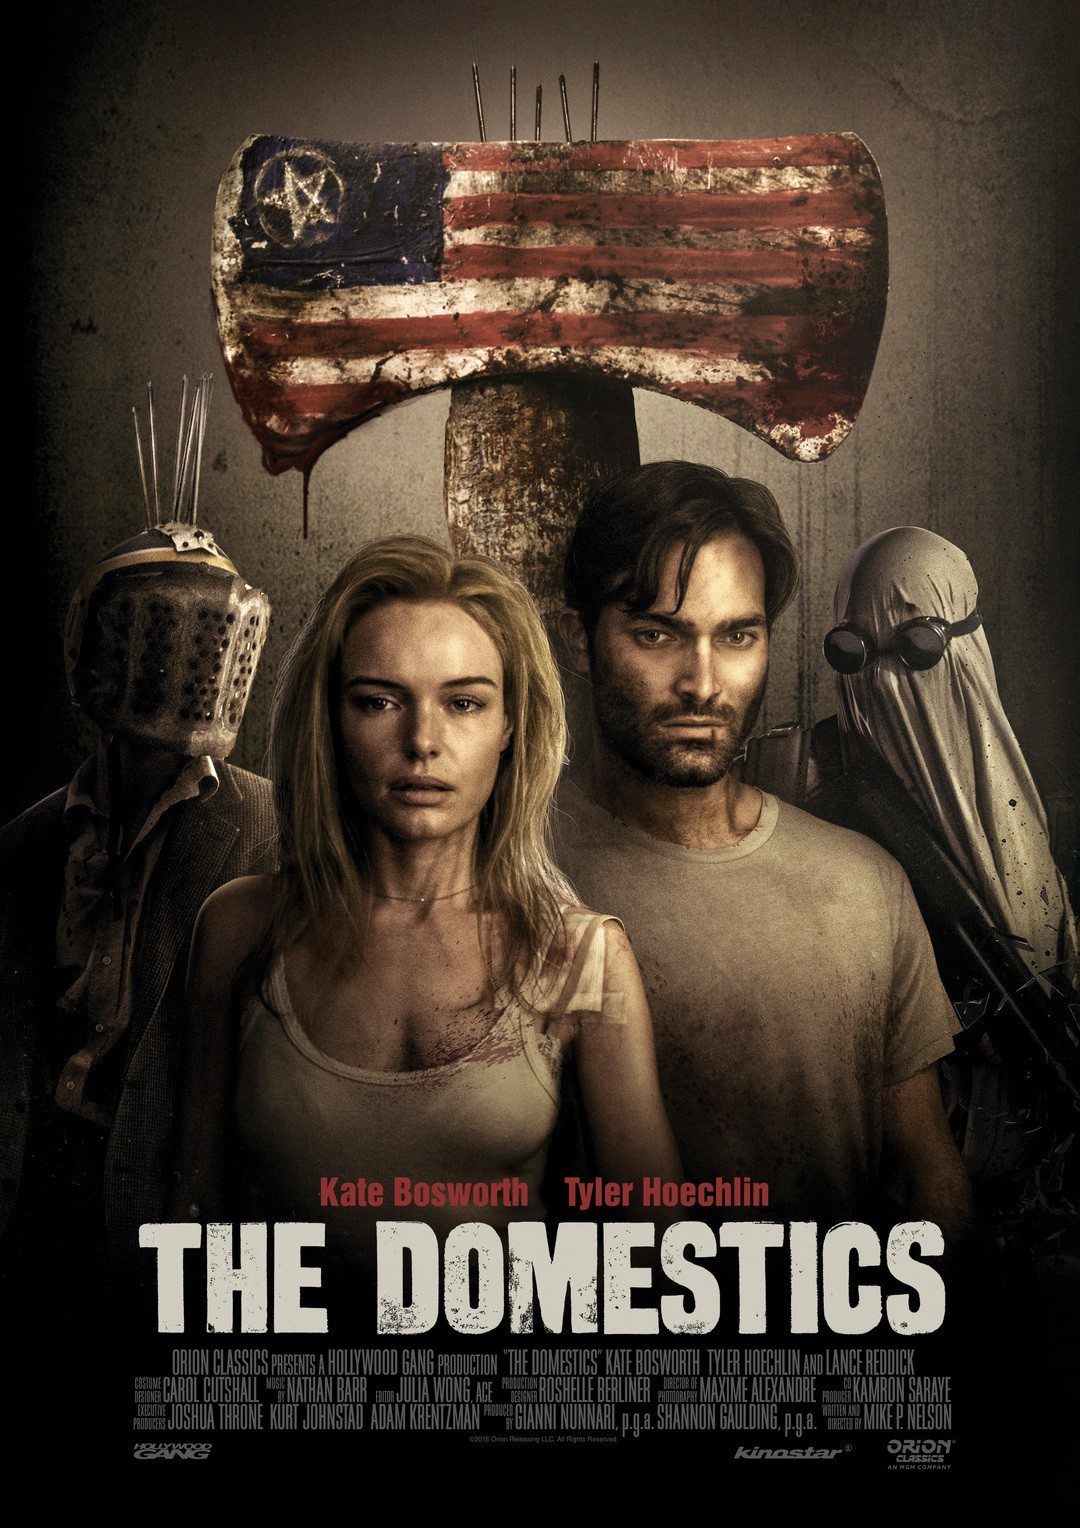 The Domestics Trailer - Bild 1 von 11